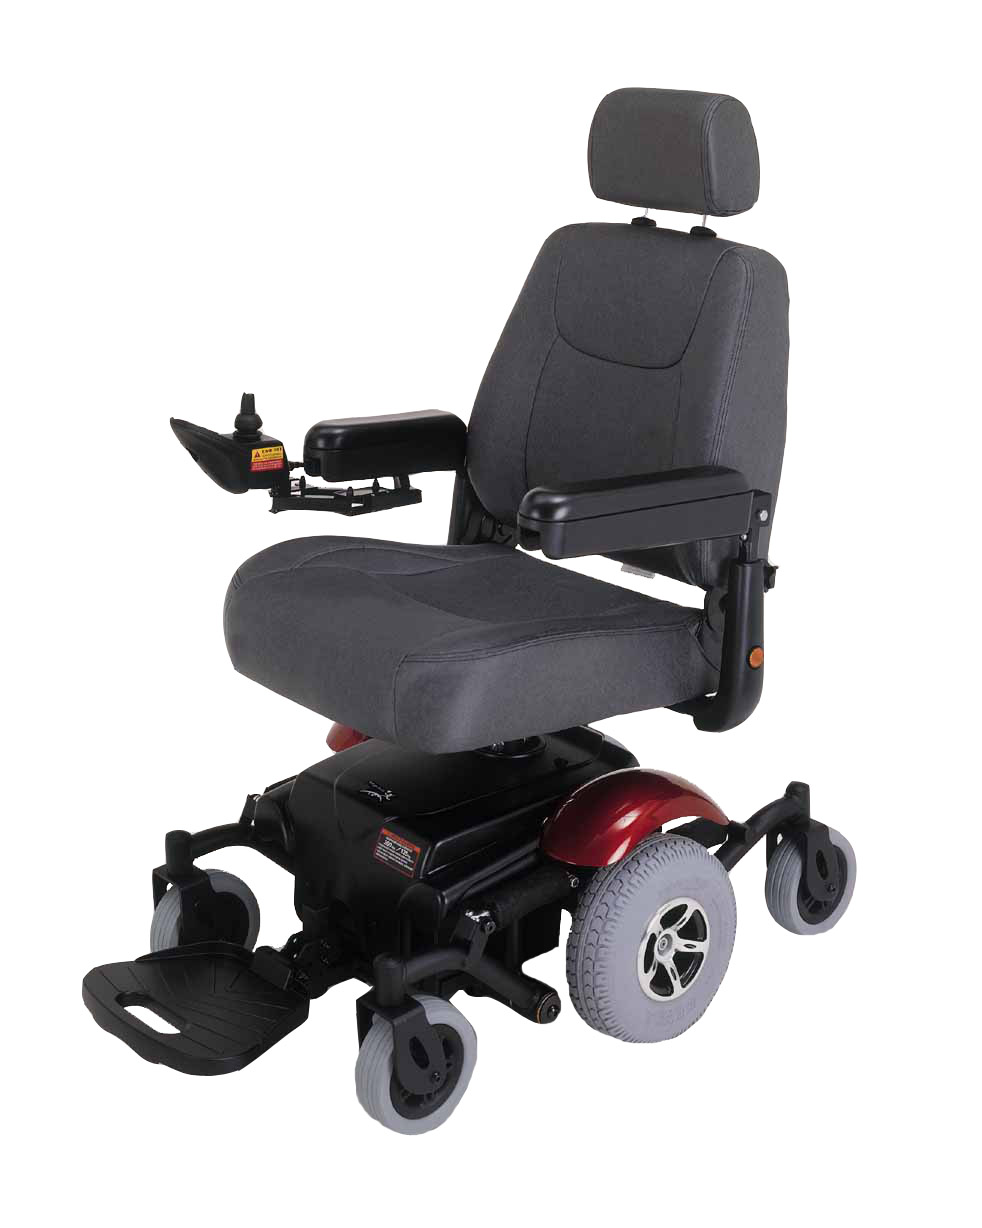 electric wheelchairs houston tx, need to buy electric wheel chair, pride electric wheel chair jazzy model, electric push wheelchairs